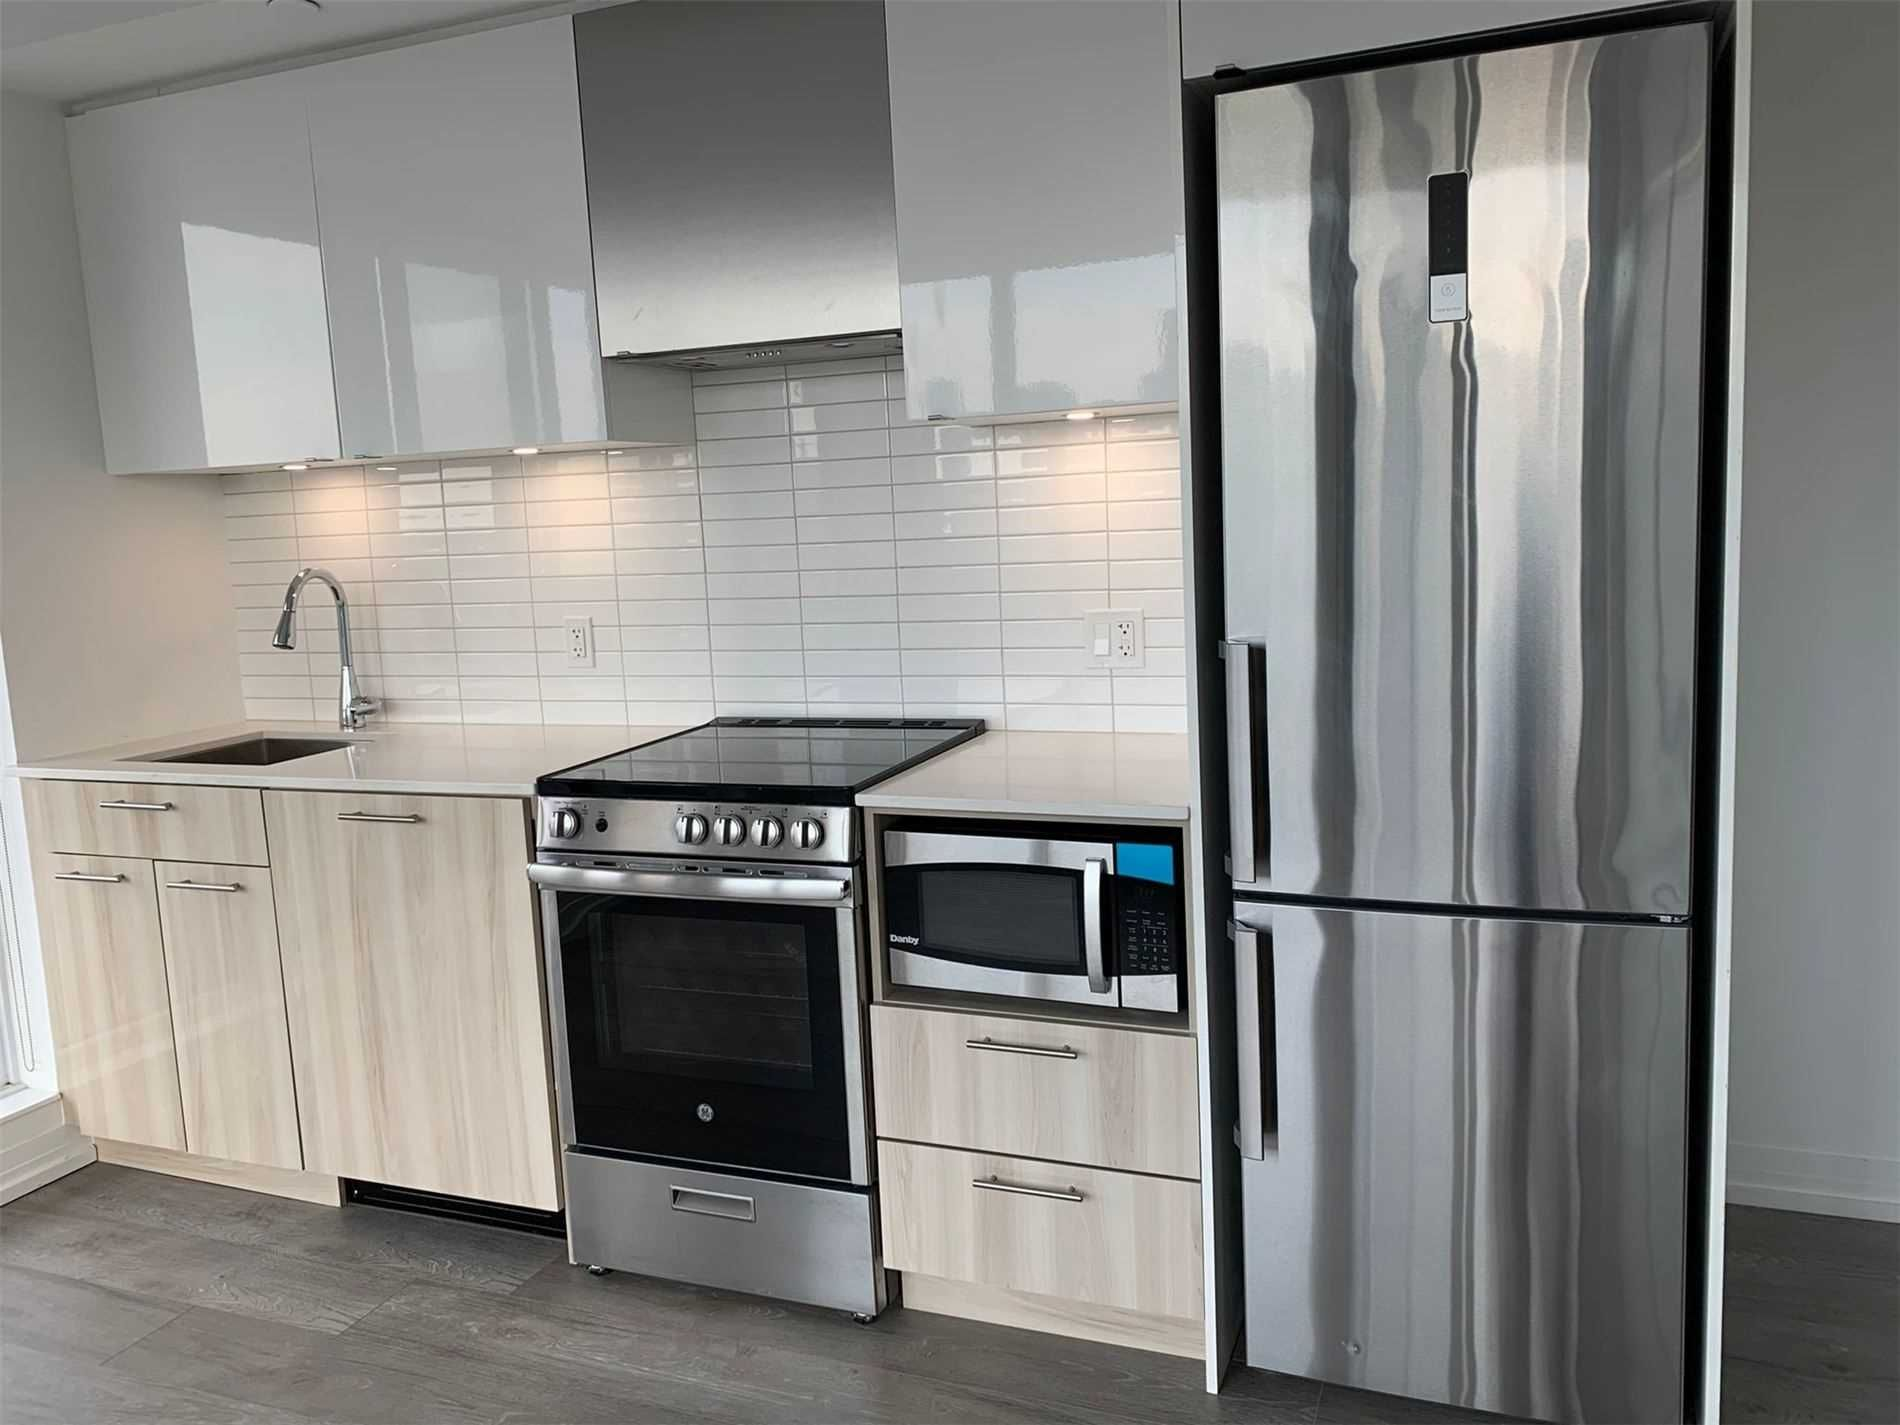 251 Jarvis St, unit 909 for sale in Toronto - image #2